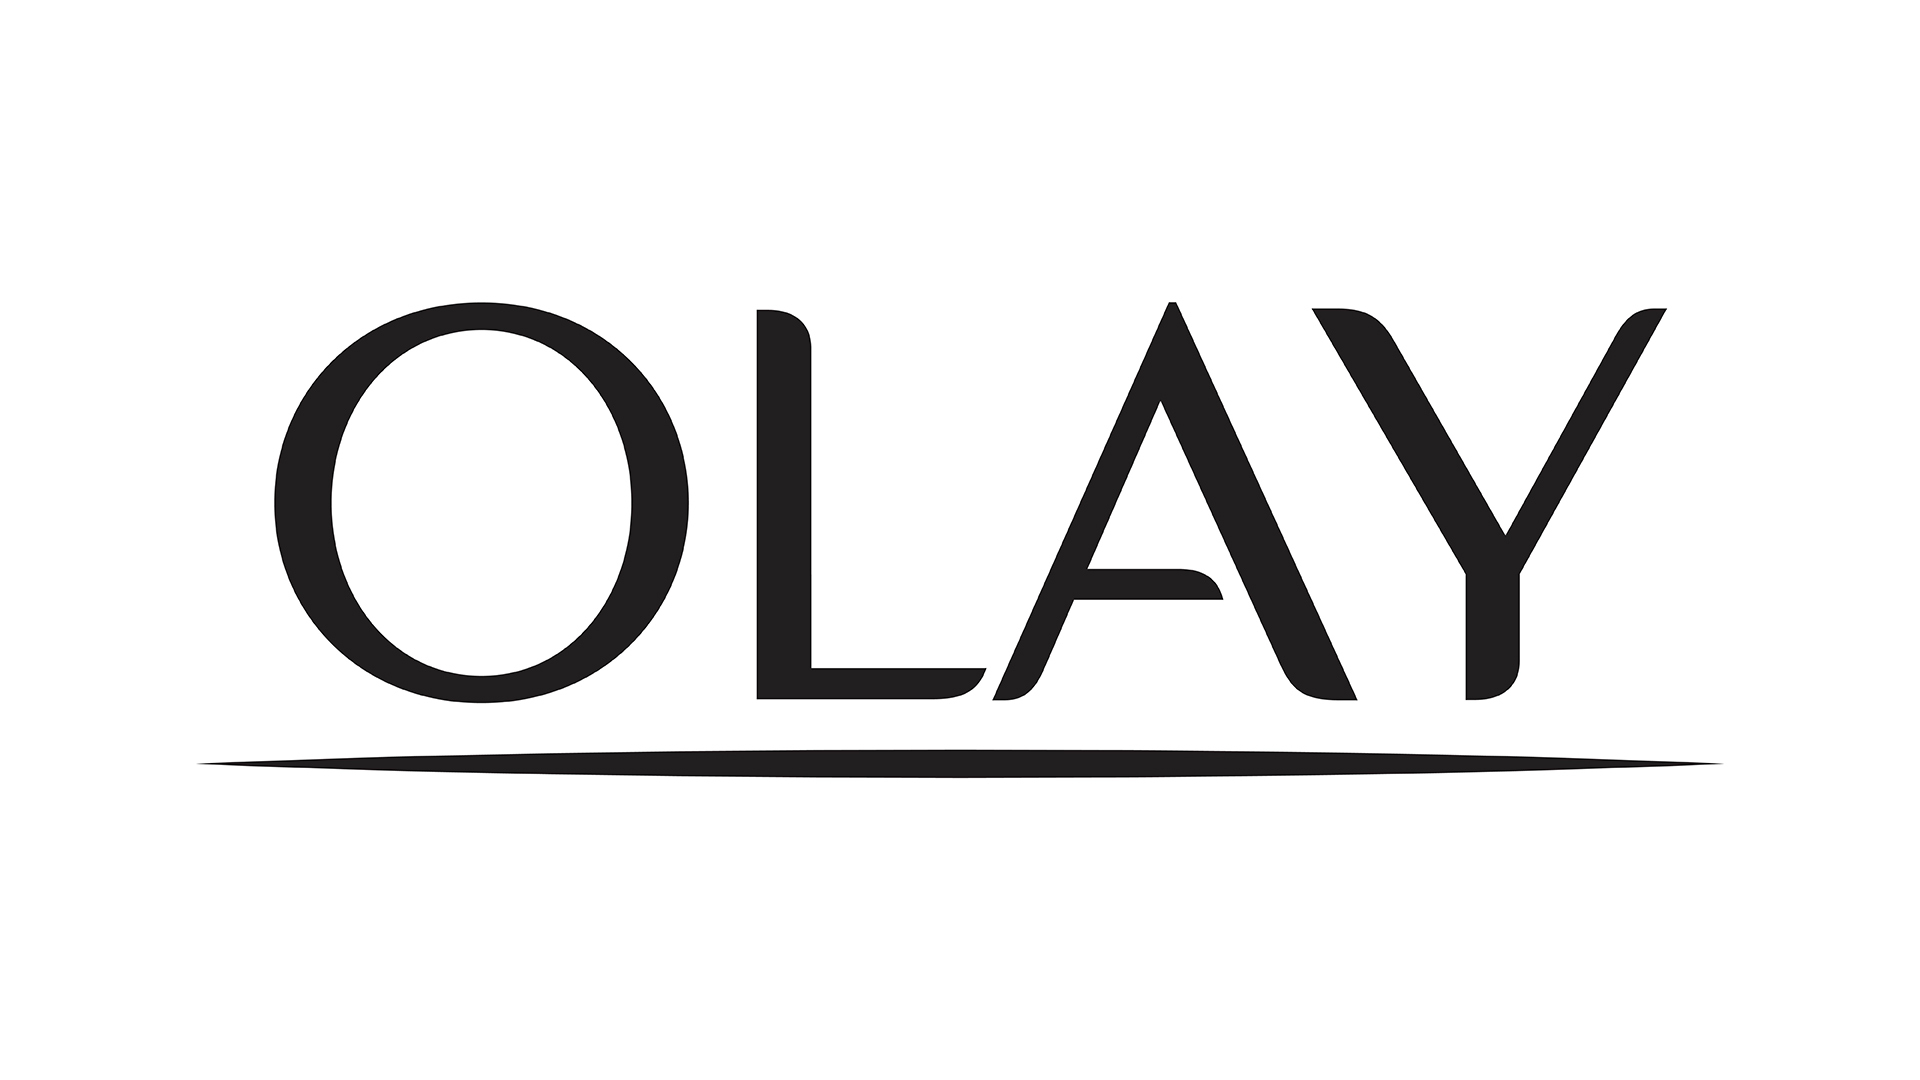 House Wiring Logo Good Housekeeping Institute Study Proves Olay Outperforms